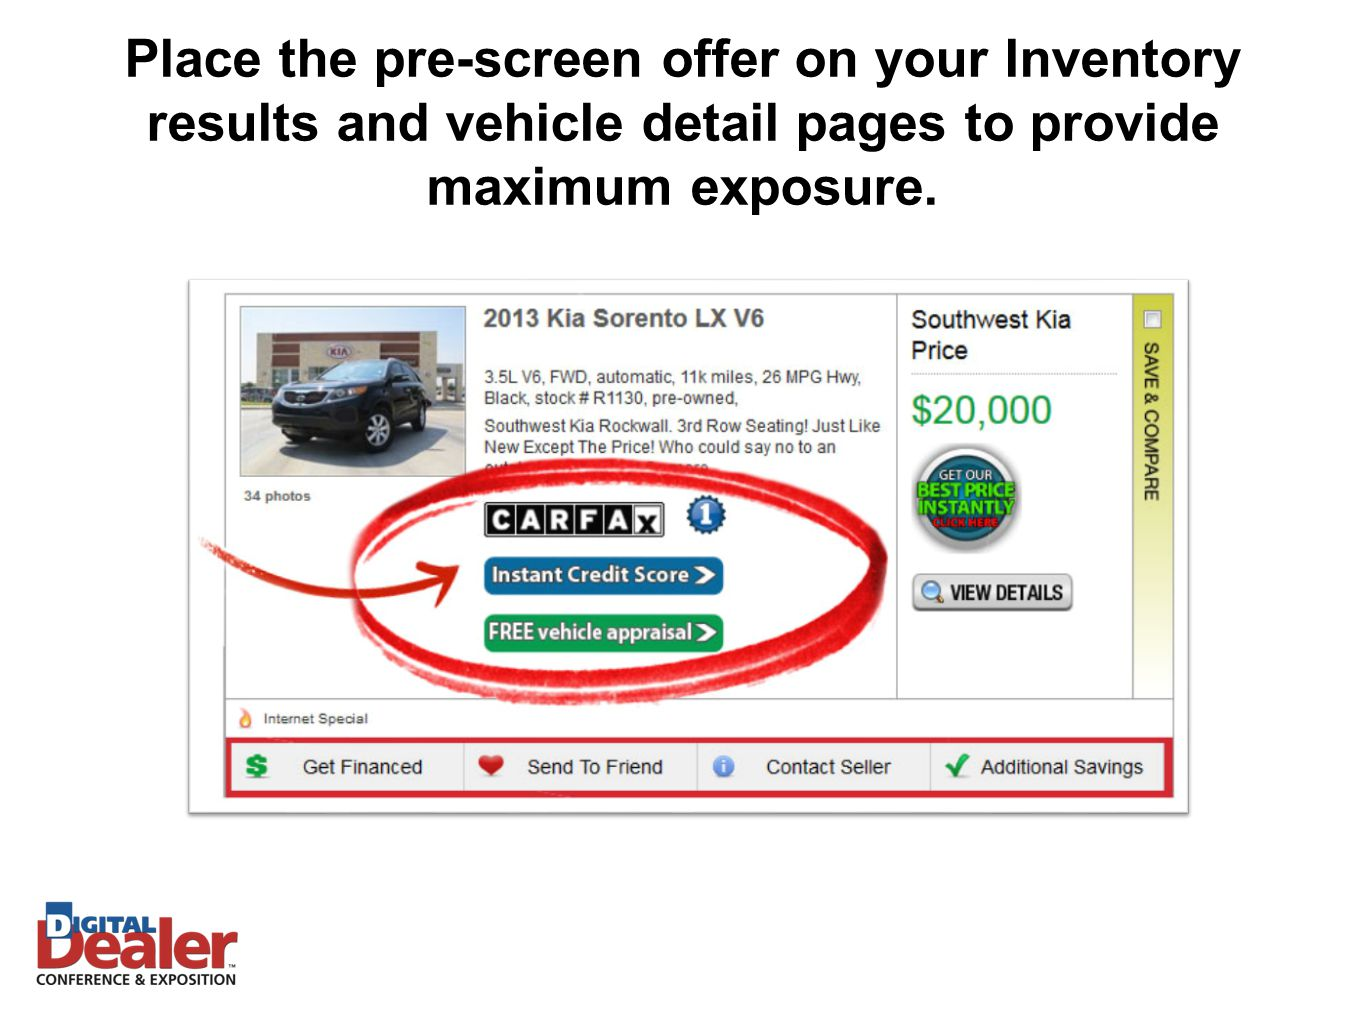 Place the pre-screen offer on your Inventory results and vehicle detail pages to provide maximum exposure.